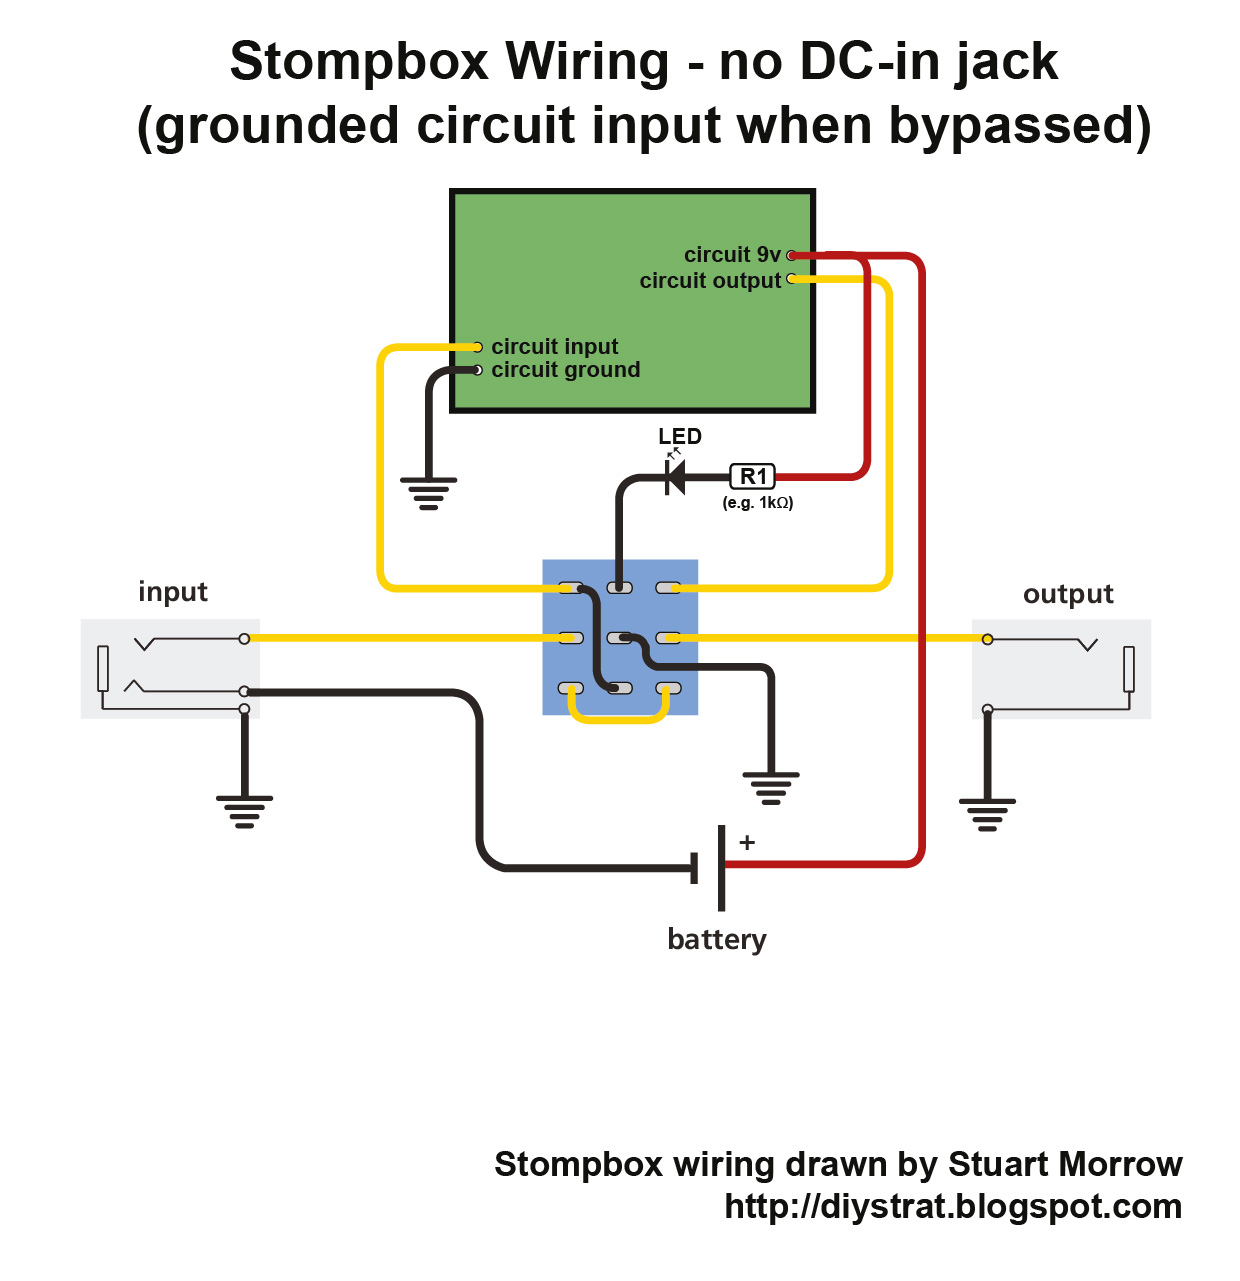 Dc Jack Wiring Diagram Real For Headphones How To Wire Up A Stomp Box Effects Pedal Diy Strat Positive Negative Converter From Ac